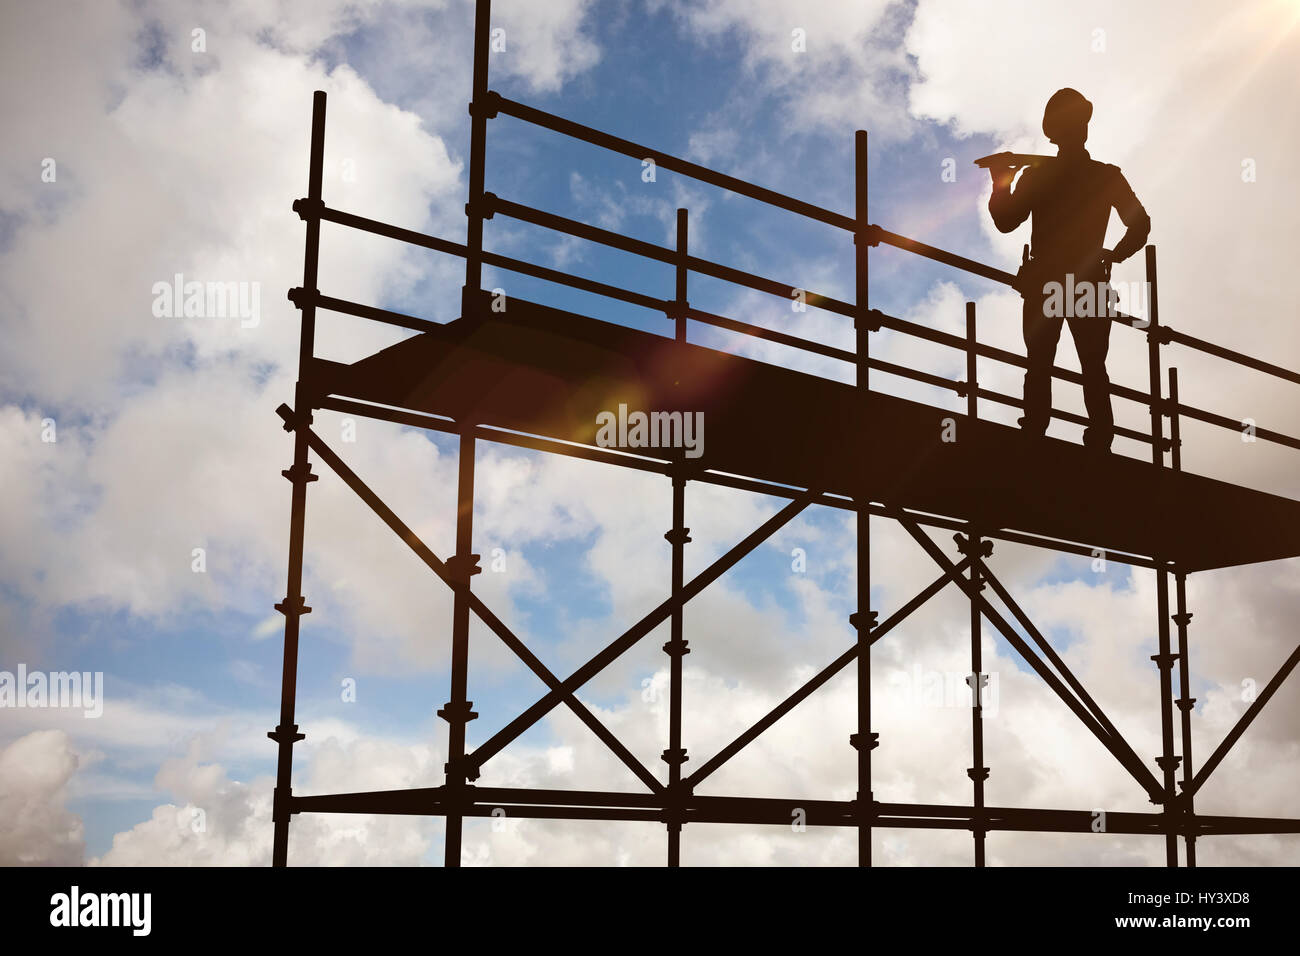 Thoughtful worker carrying wooden planks against blue sky with white clouds - Stock Image